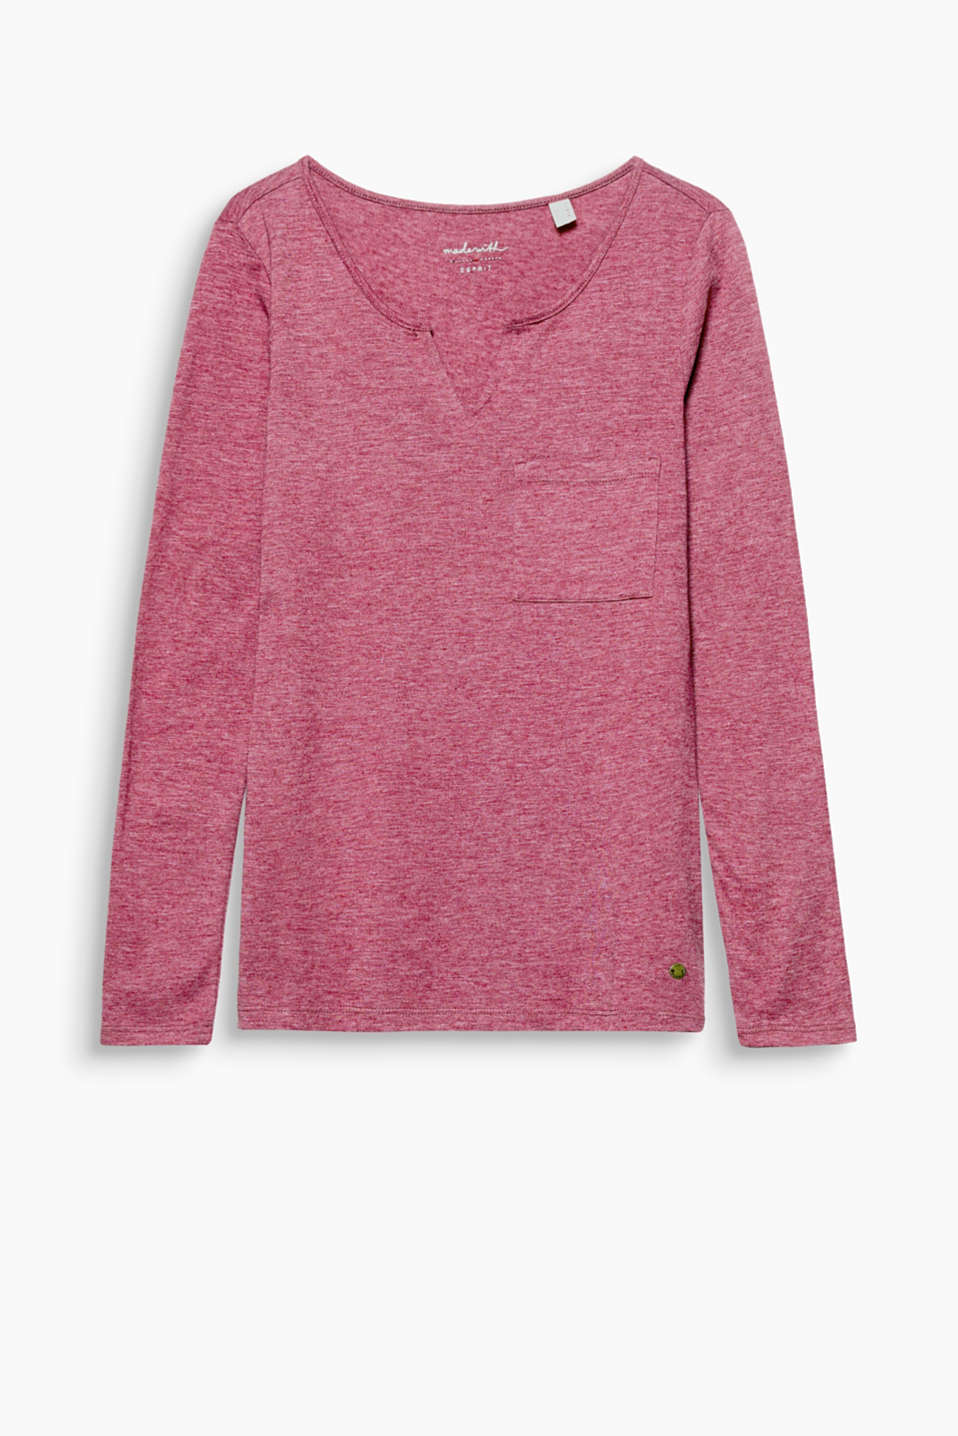 Casual and versatile, this long sleeve top with a Henley neckline can be worn on its own or under a cardigan or blazer!